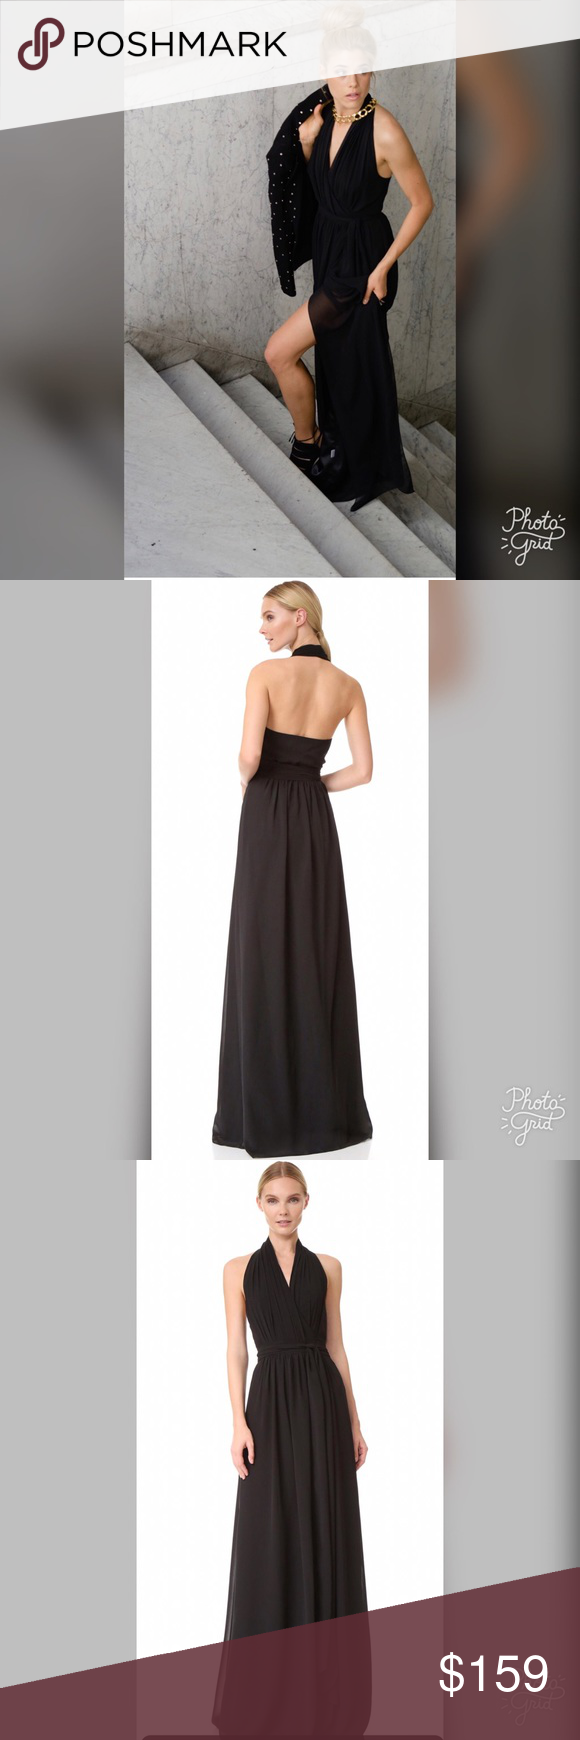 Ceremony by joanna august black wrap dress wrap dresses ethereal